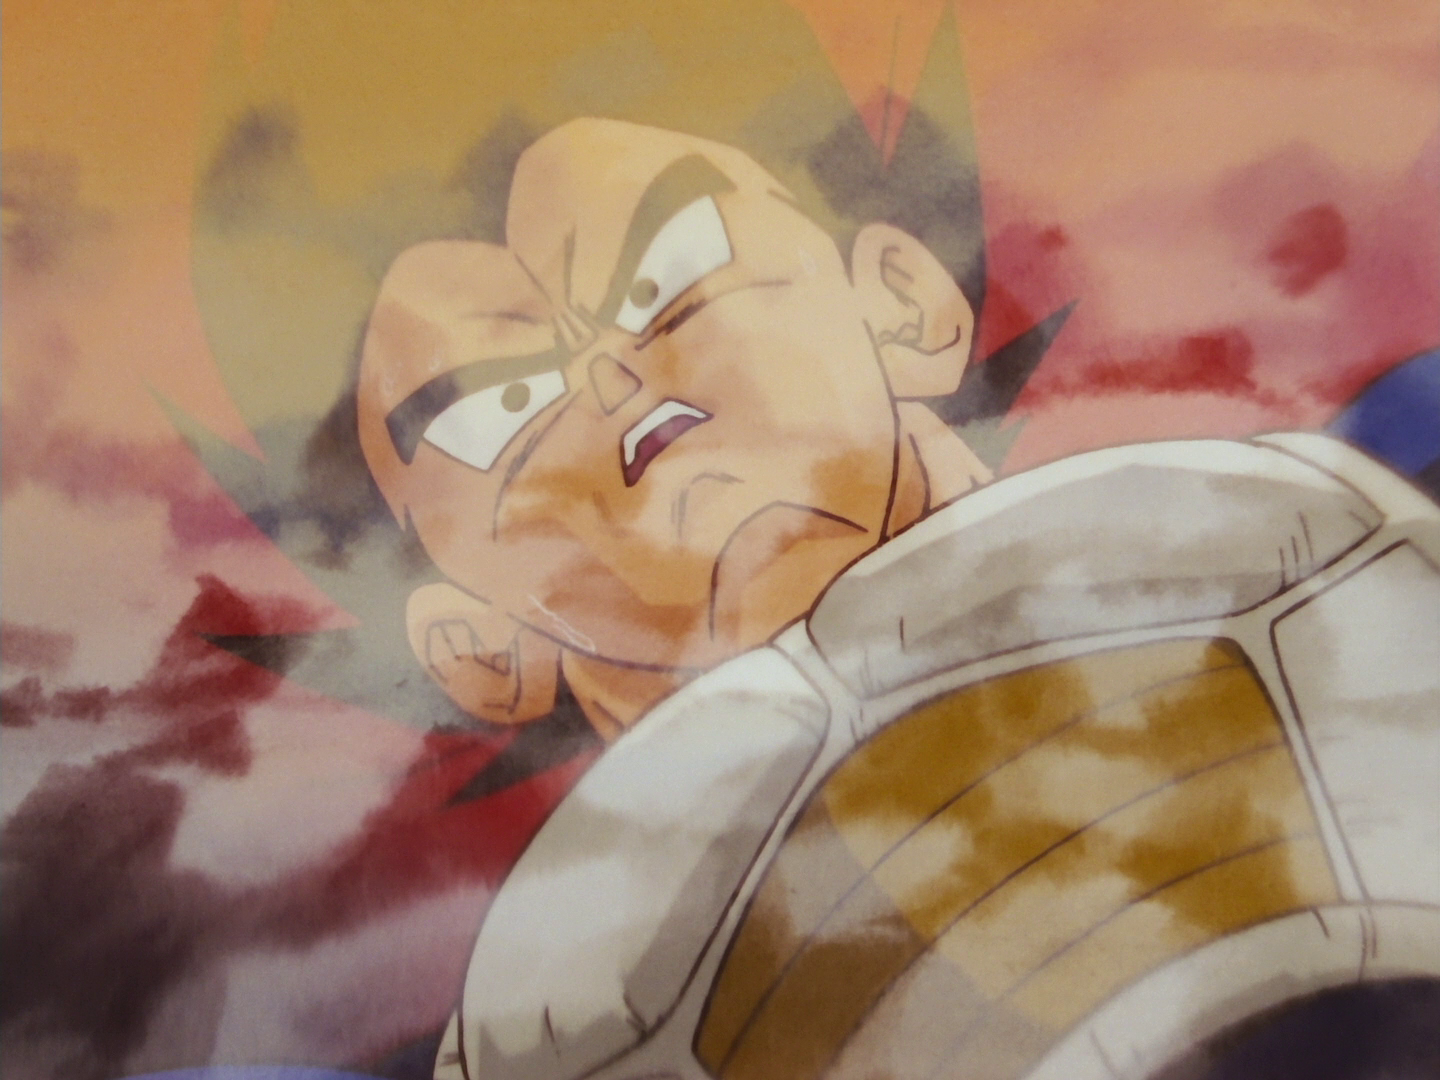 File:VegetaFutureGokusDead02.png